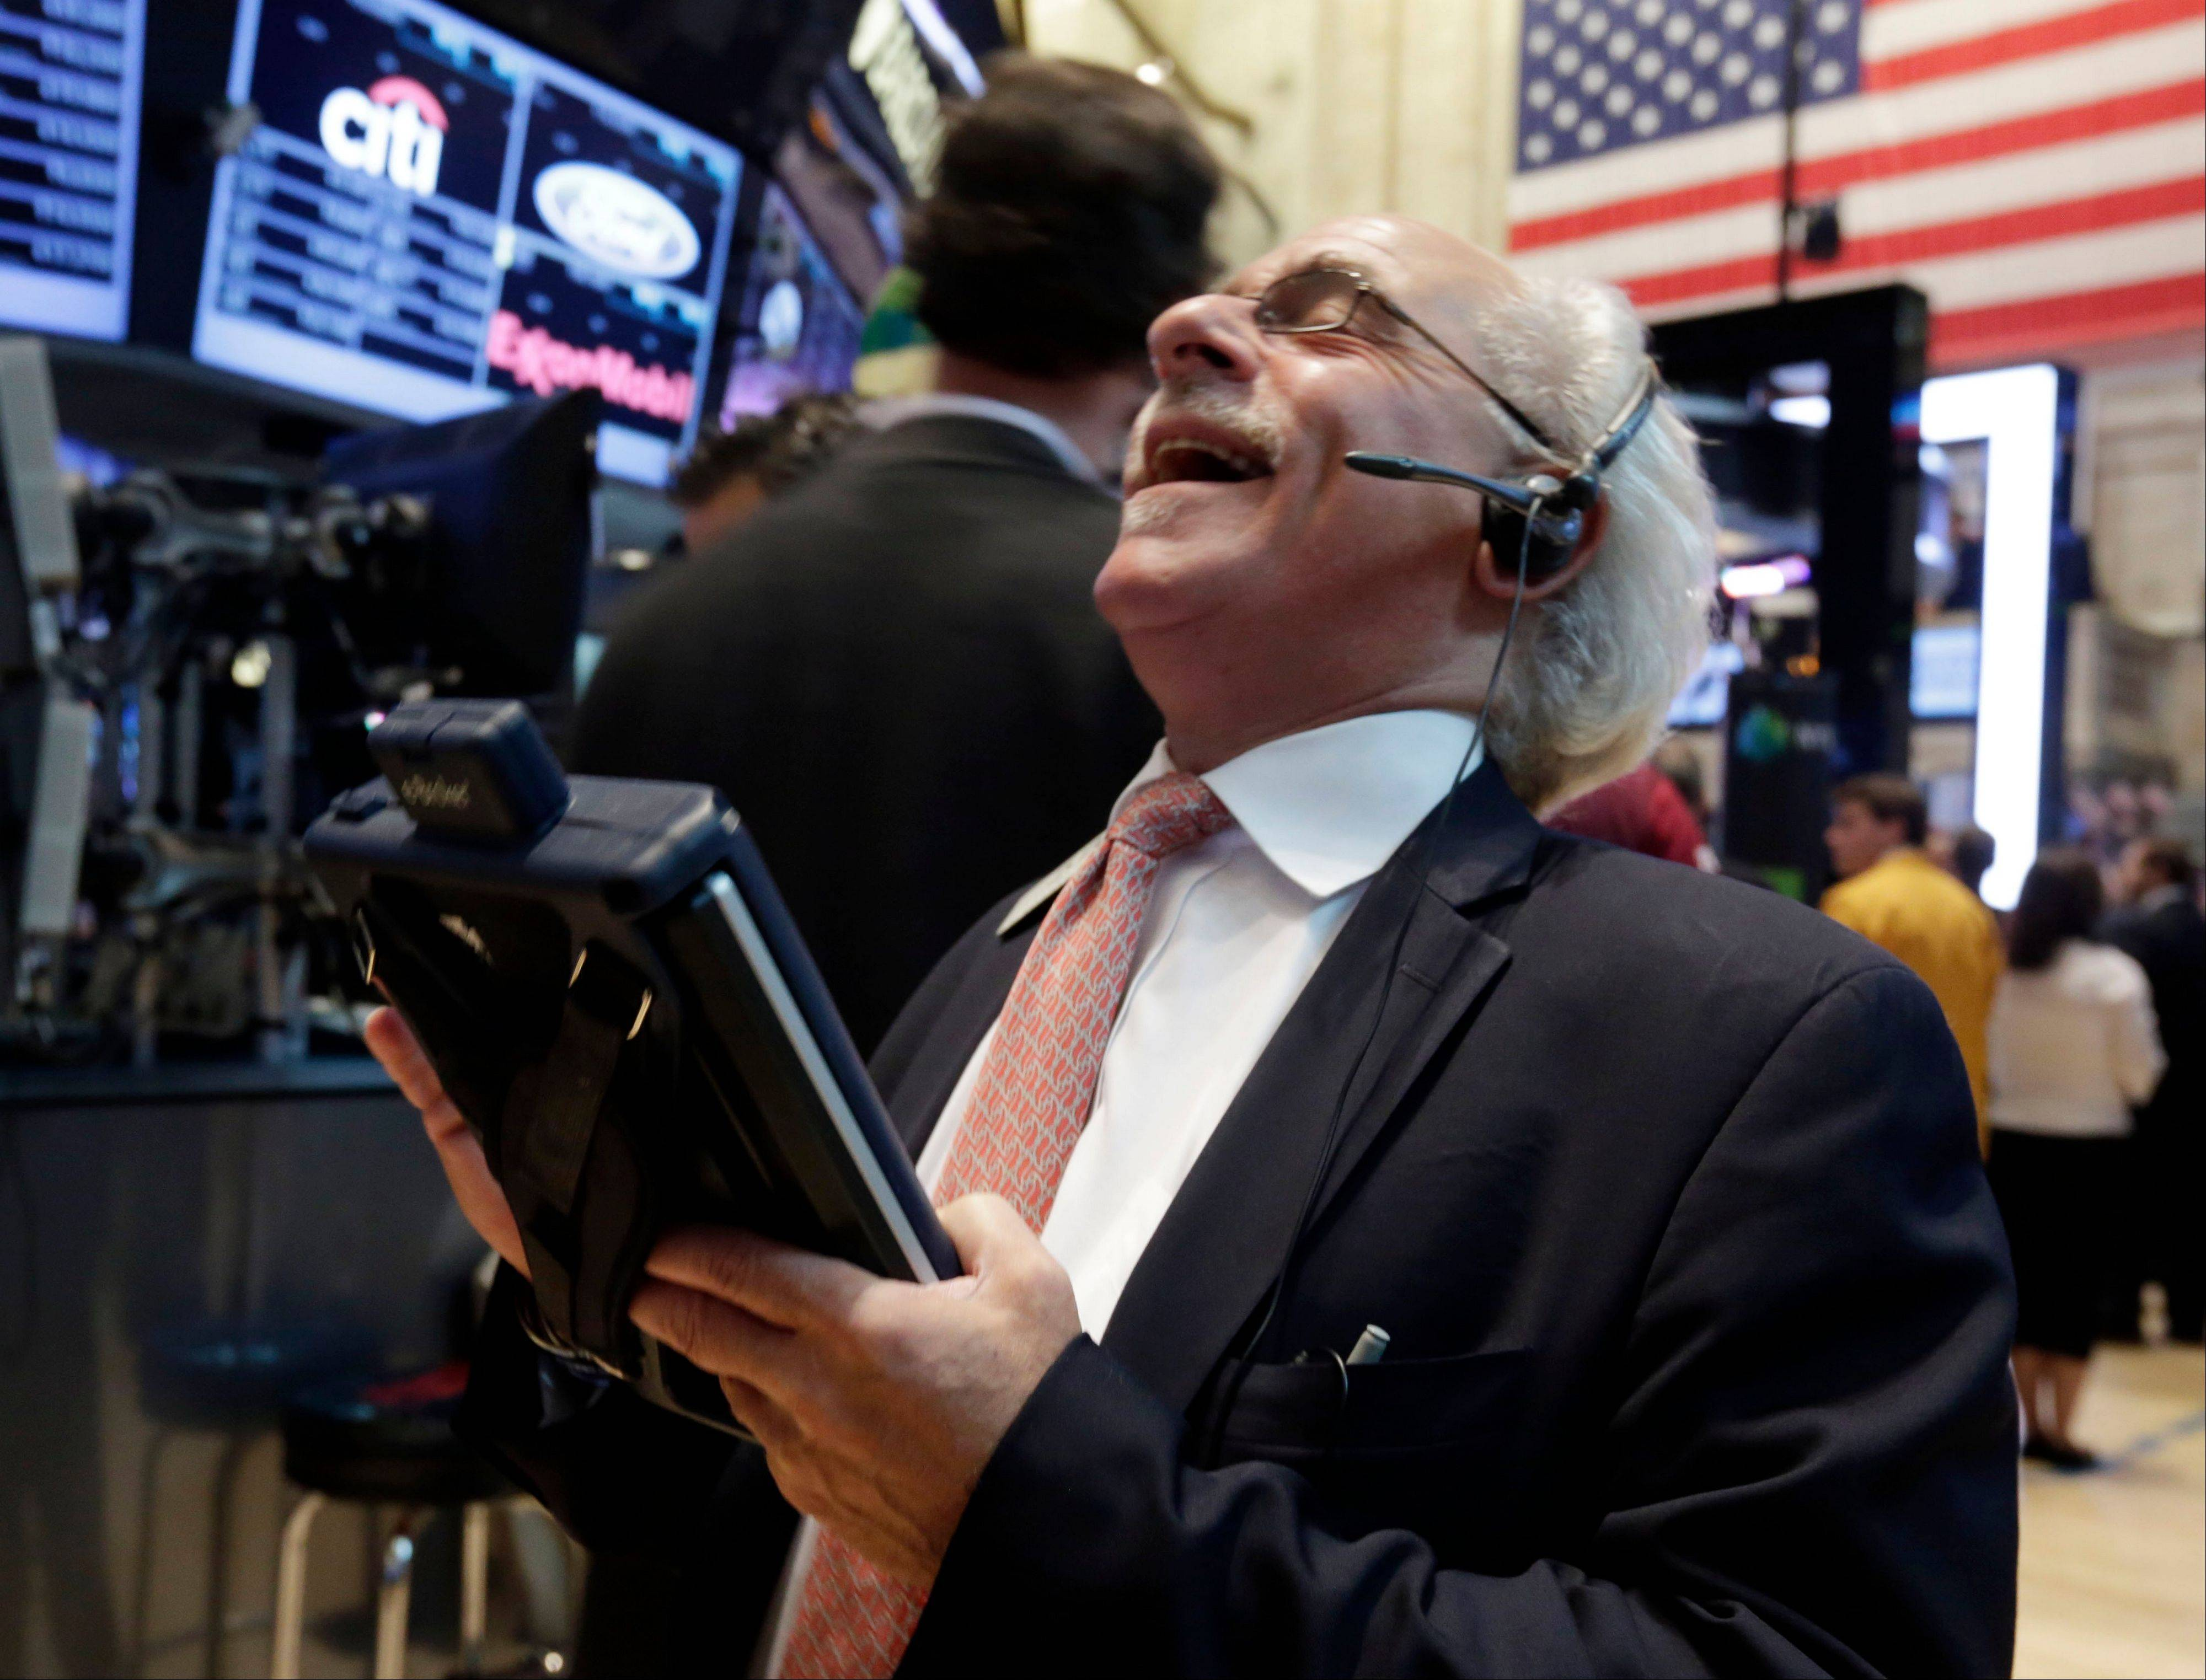 Trader Peter Tuchman reacts to another trader�s comment as he works Friday on the floor of the New York Stock Exchange.